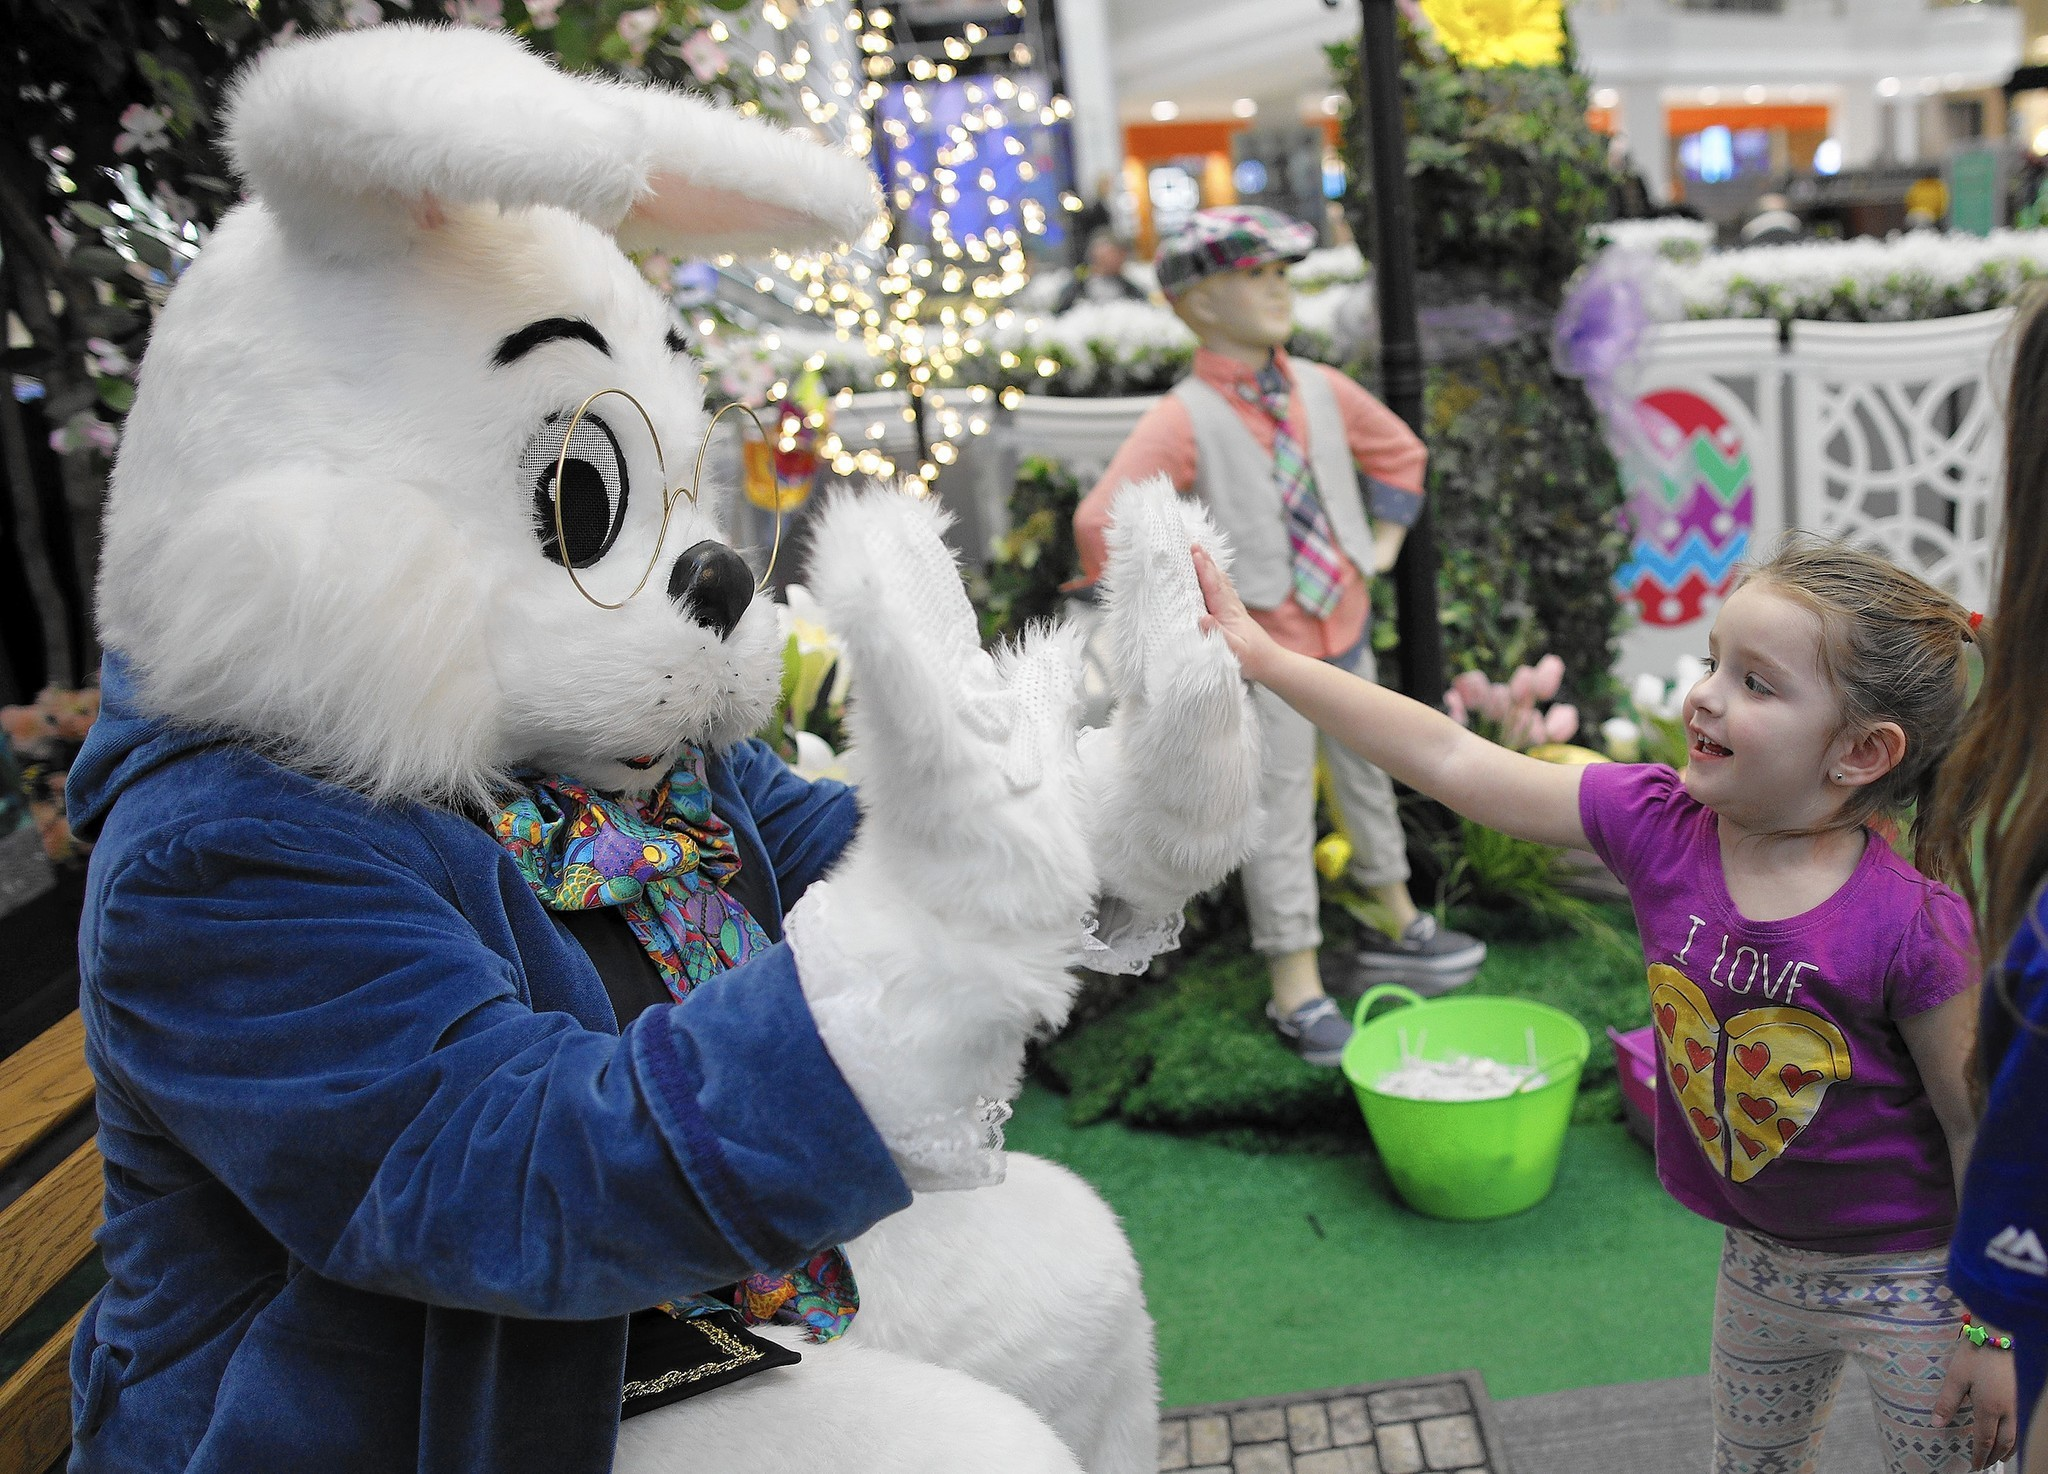 Malls In Ct >> The Easter Bunny will see you now: Malls hope holiday hop draws crowds to shop - Chicago Tribune